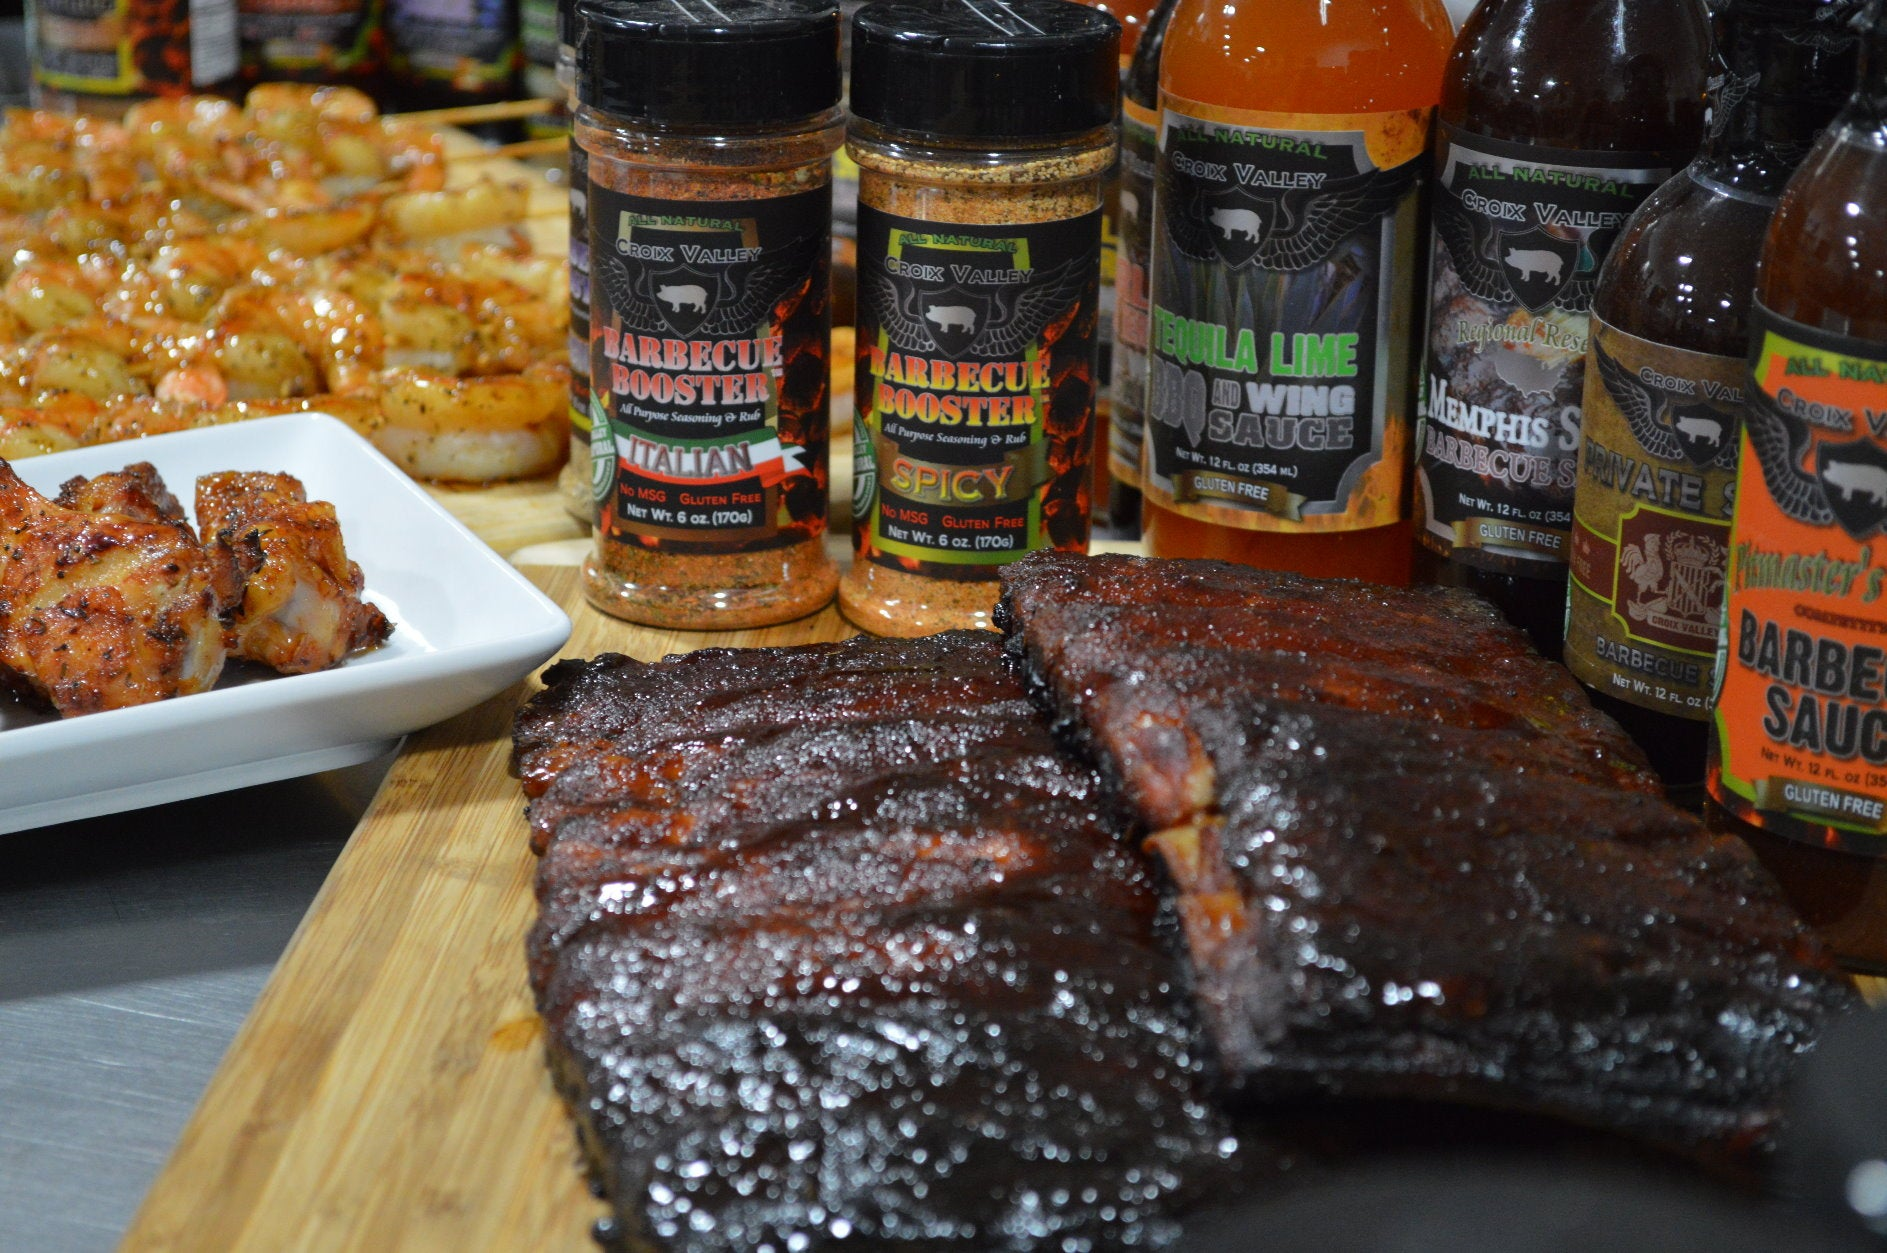 Croix Valley Sauces and Seasonings